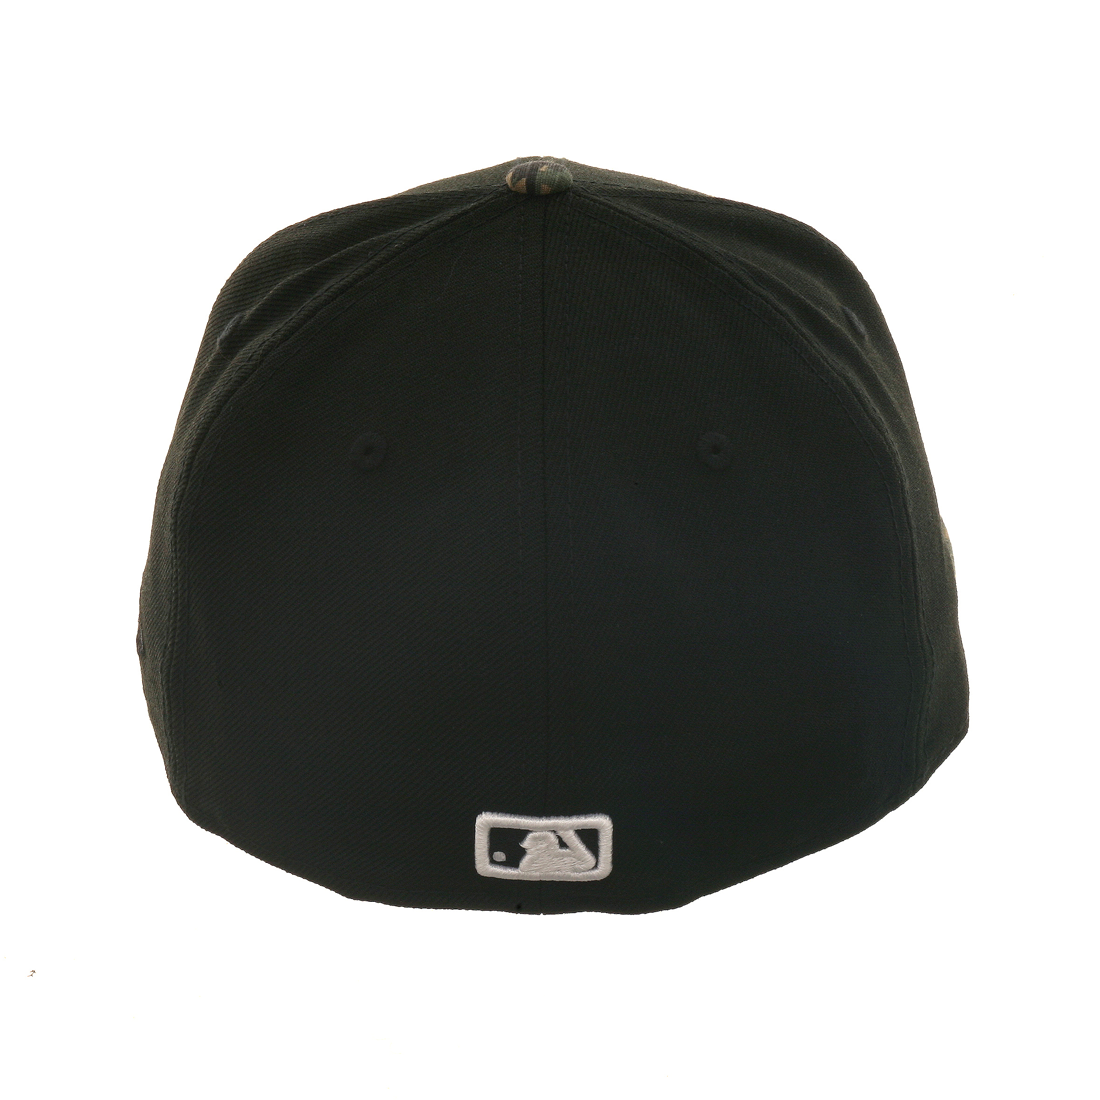 Exclusive New Era San Francisco Giants Hat - 2T Black , Digital Camo